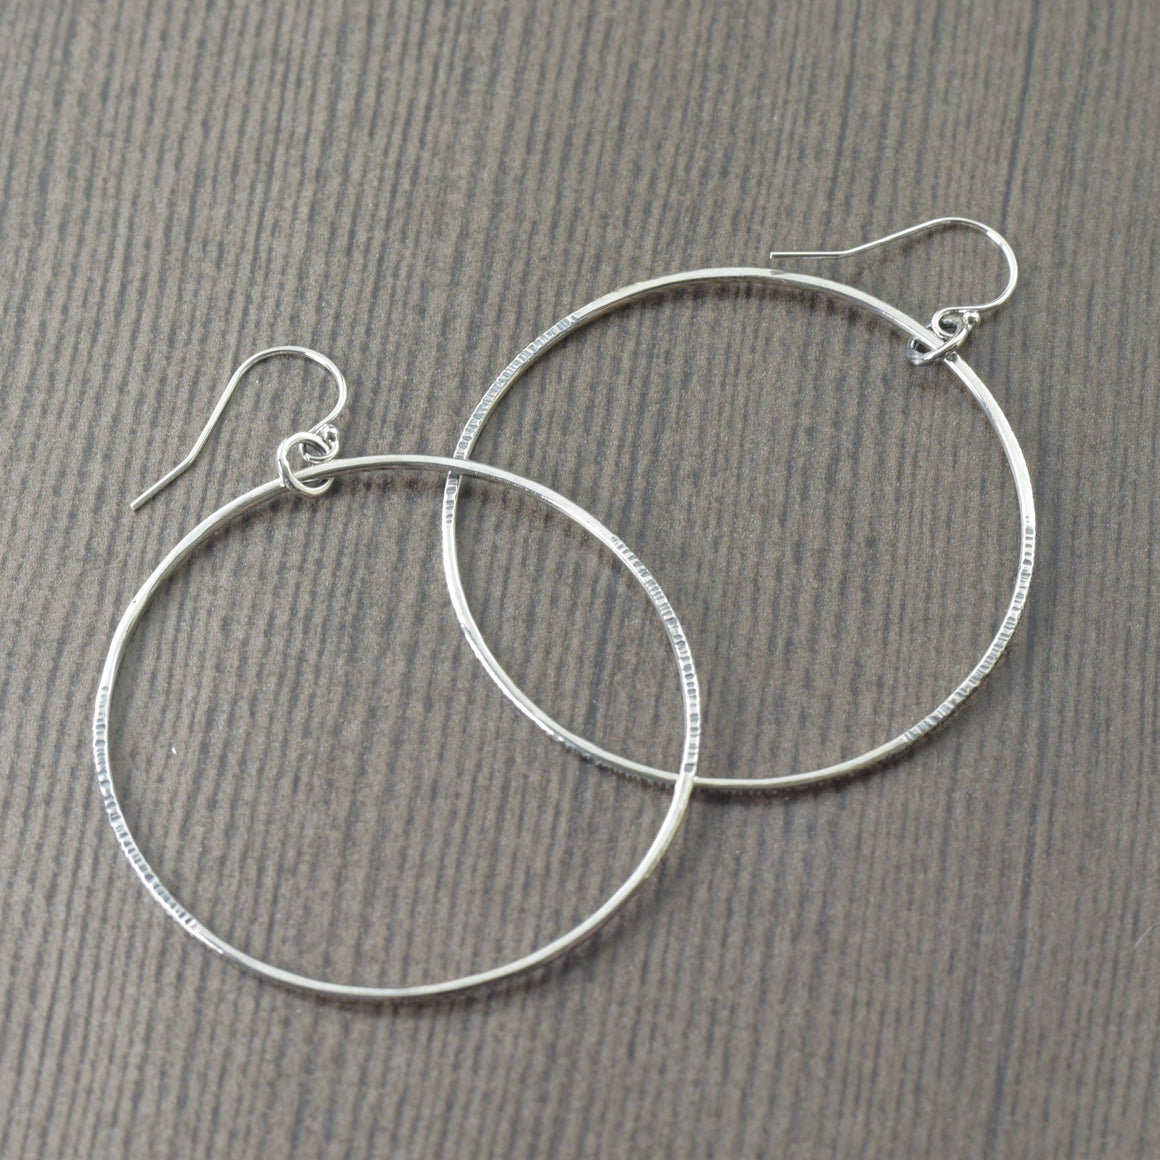 Large solid sterling silver hoops